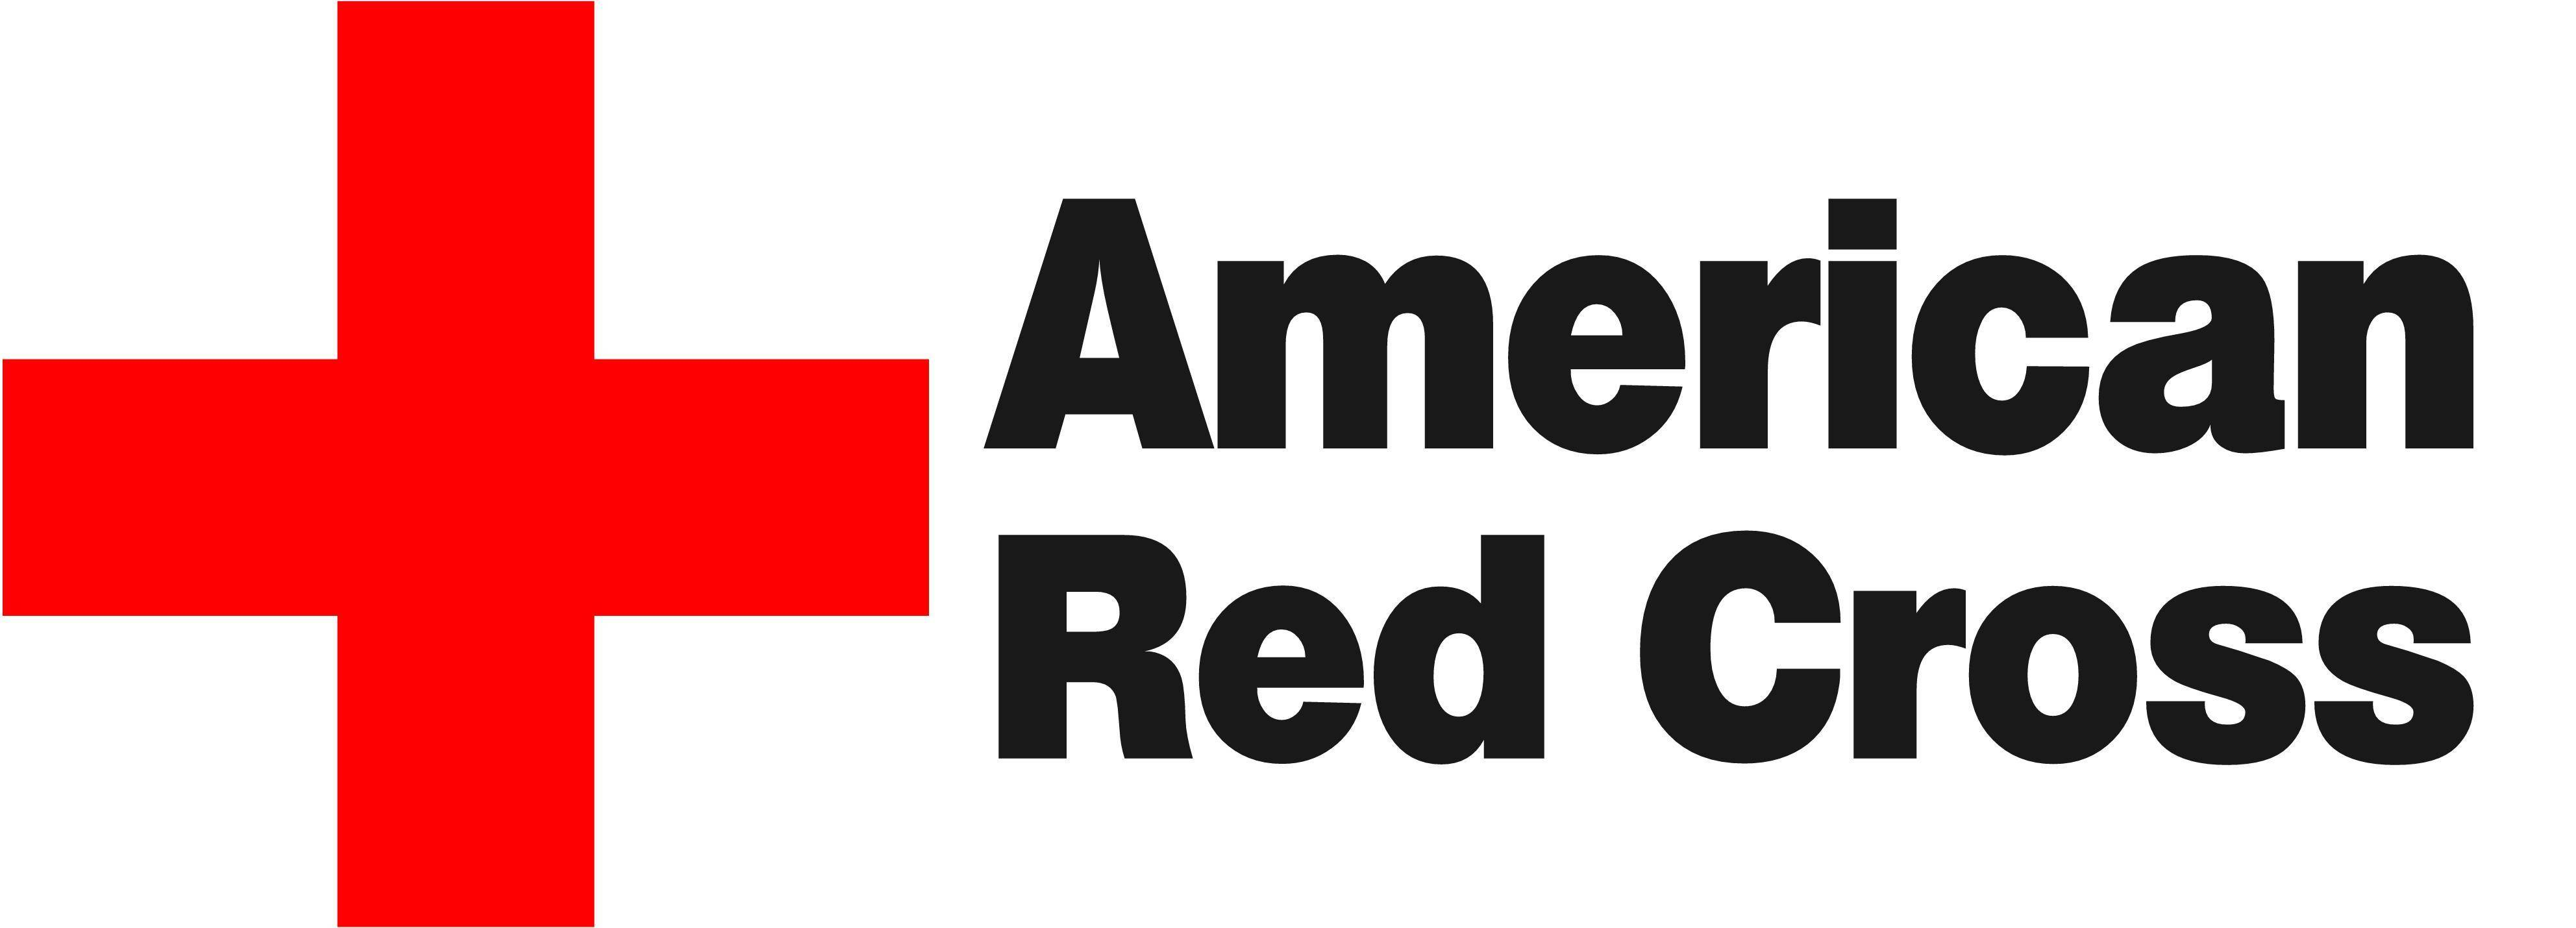 8ca389b1d005b39cd973_American-Red-Cross.jpg